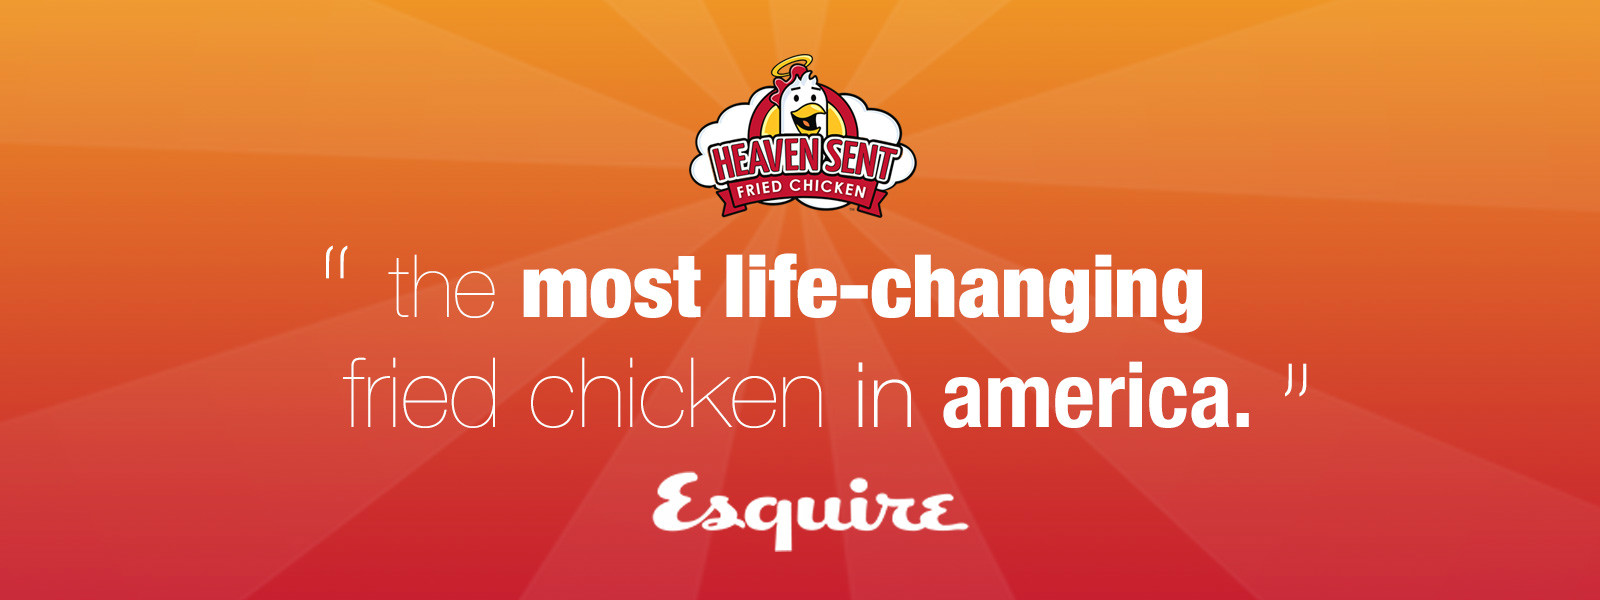 The Most Life-Changing Fried Chicken in America, Esquire Magazine. Heaven Sent Fried Chicken.